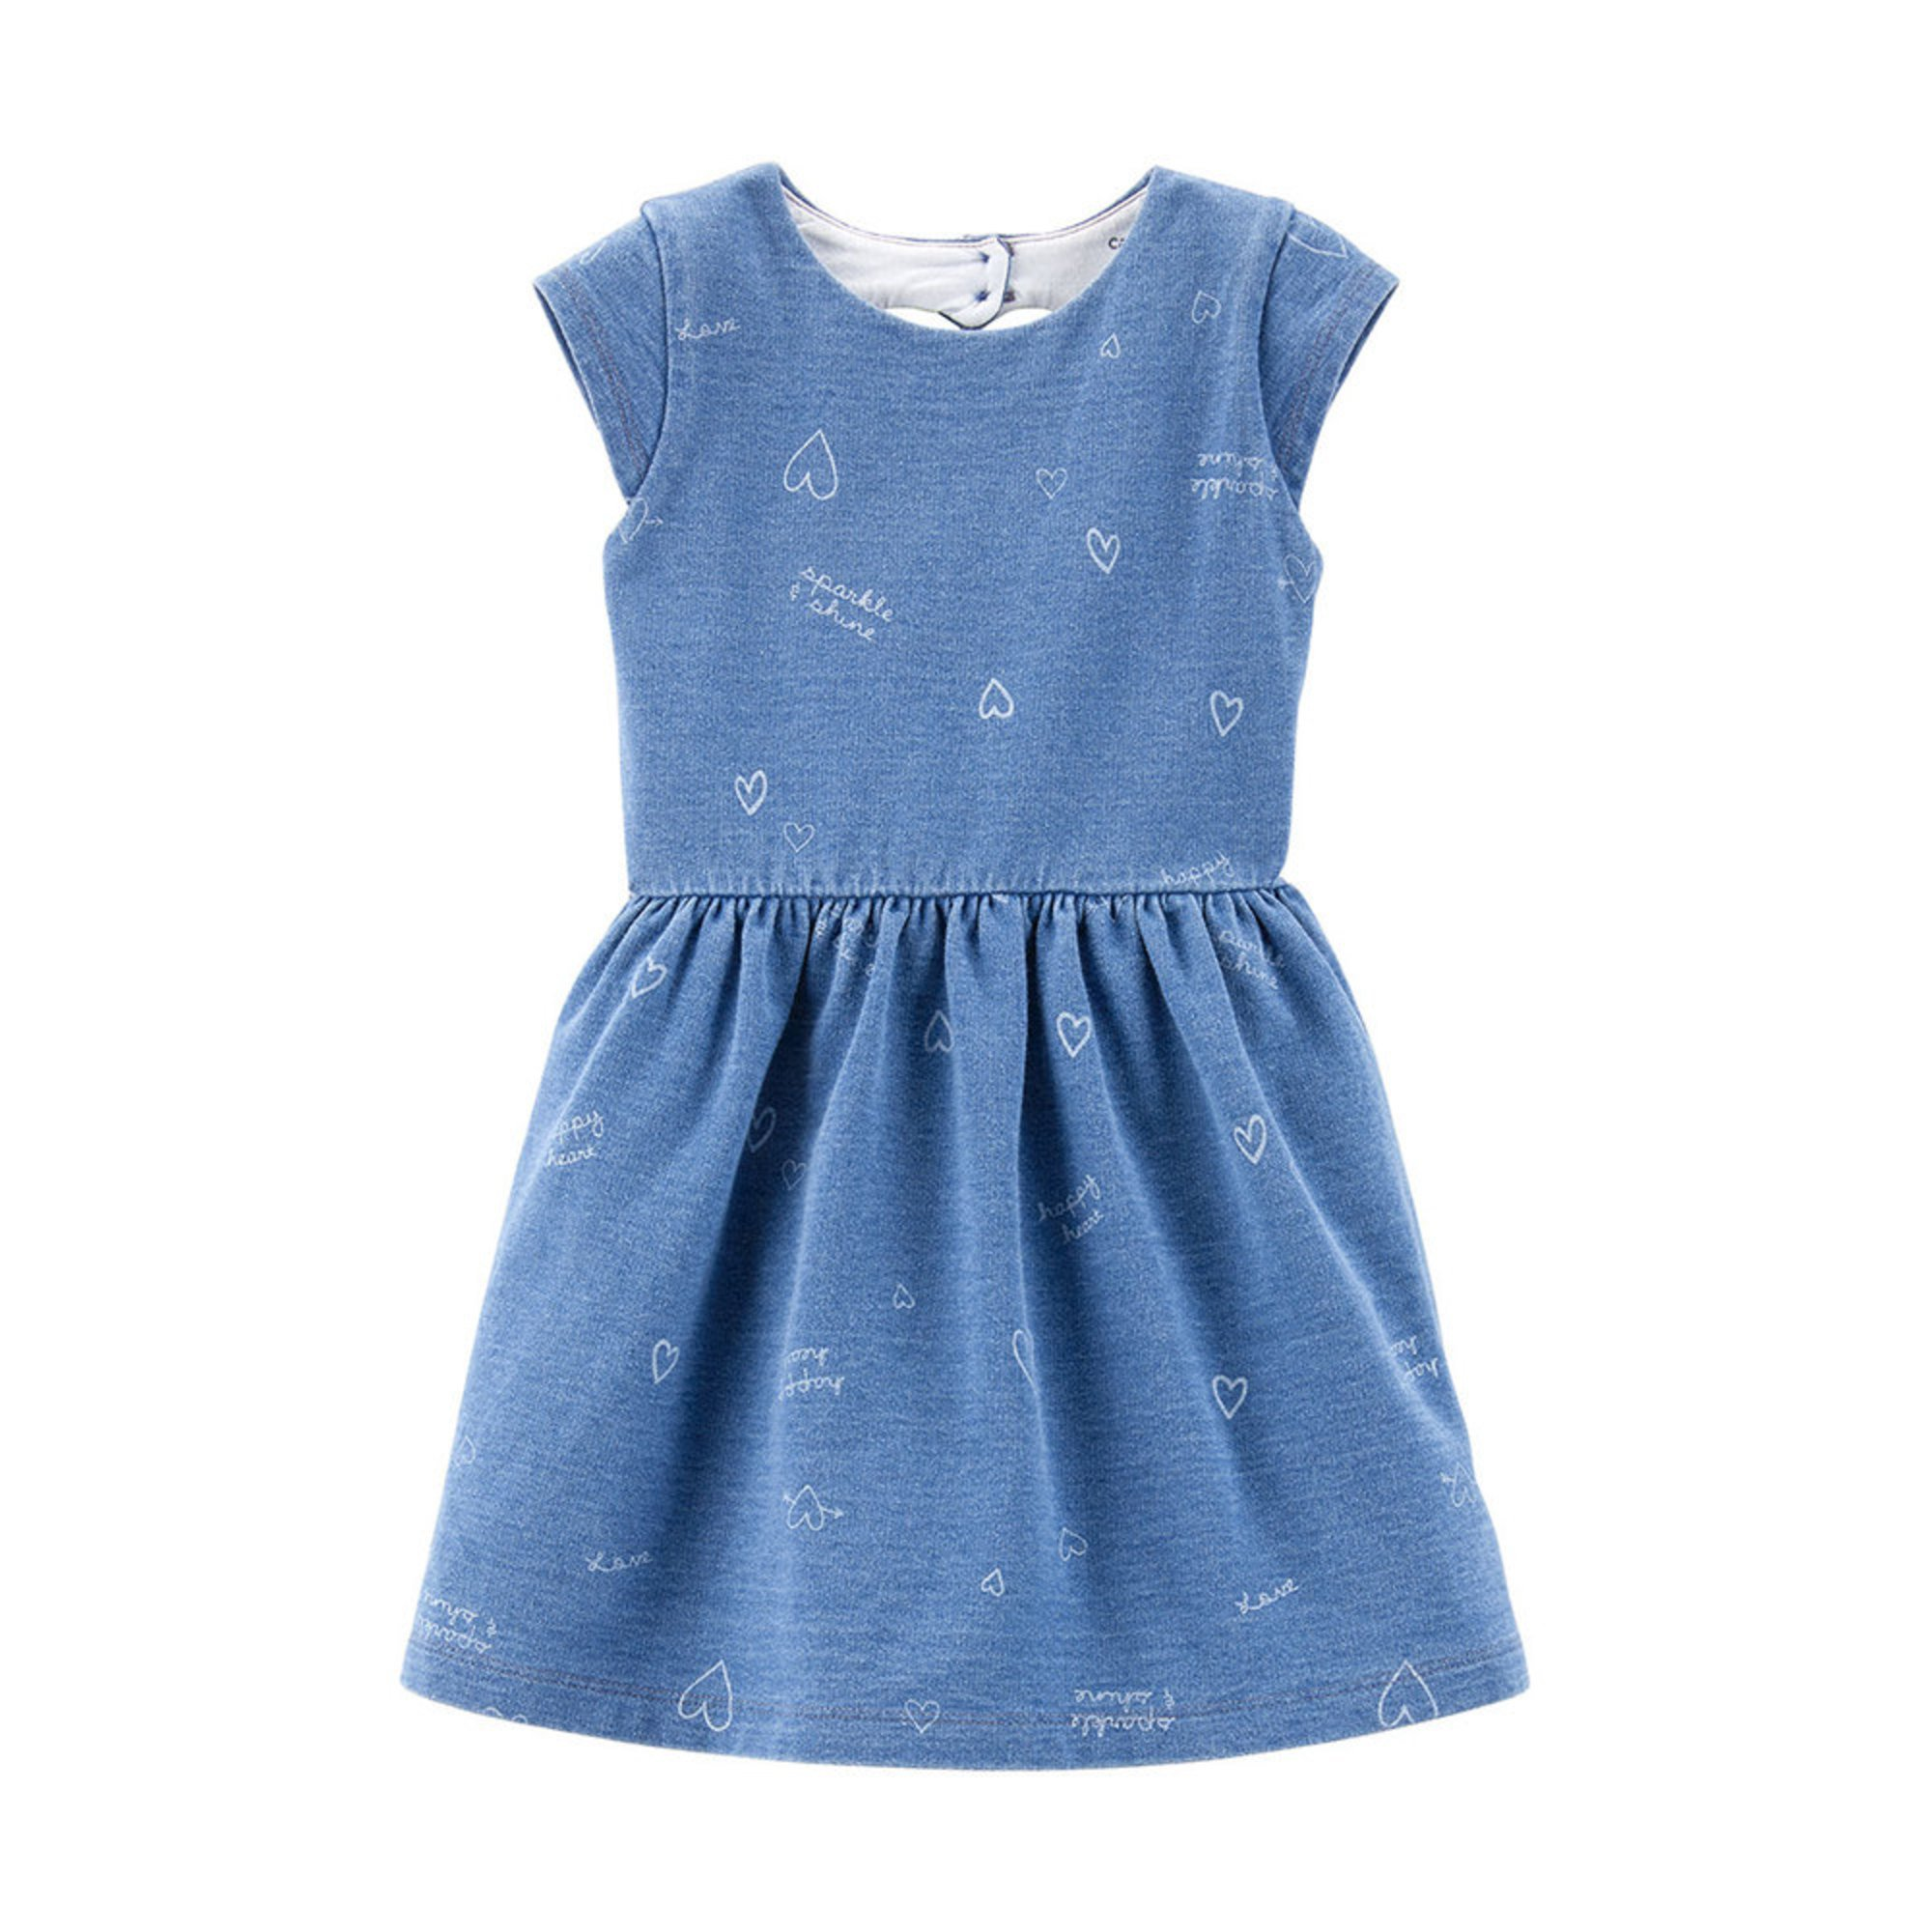 3a2b57eb5 Carters Toddler Girls Cap Sleeve All Over Heart Print Back Cut Out ...